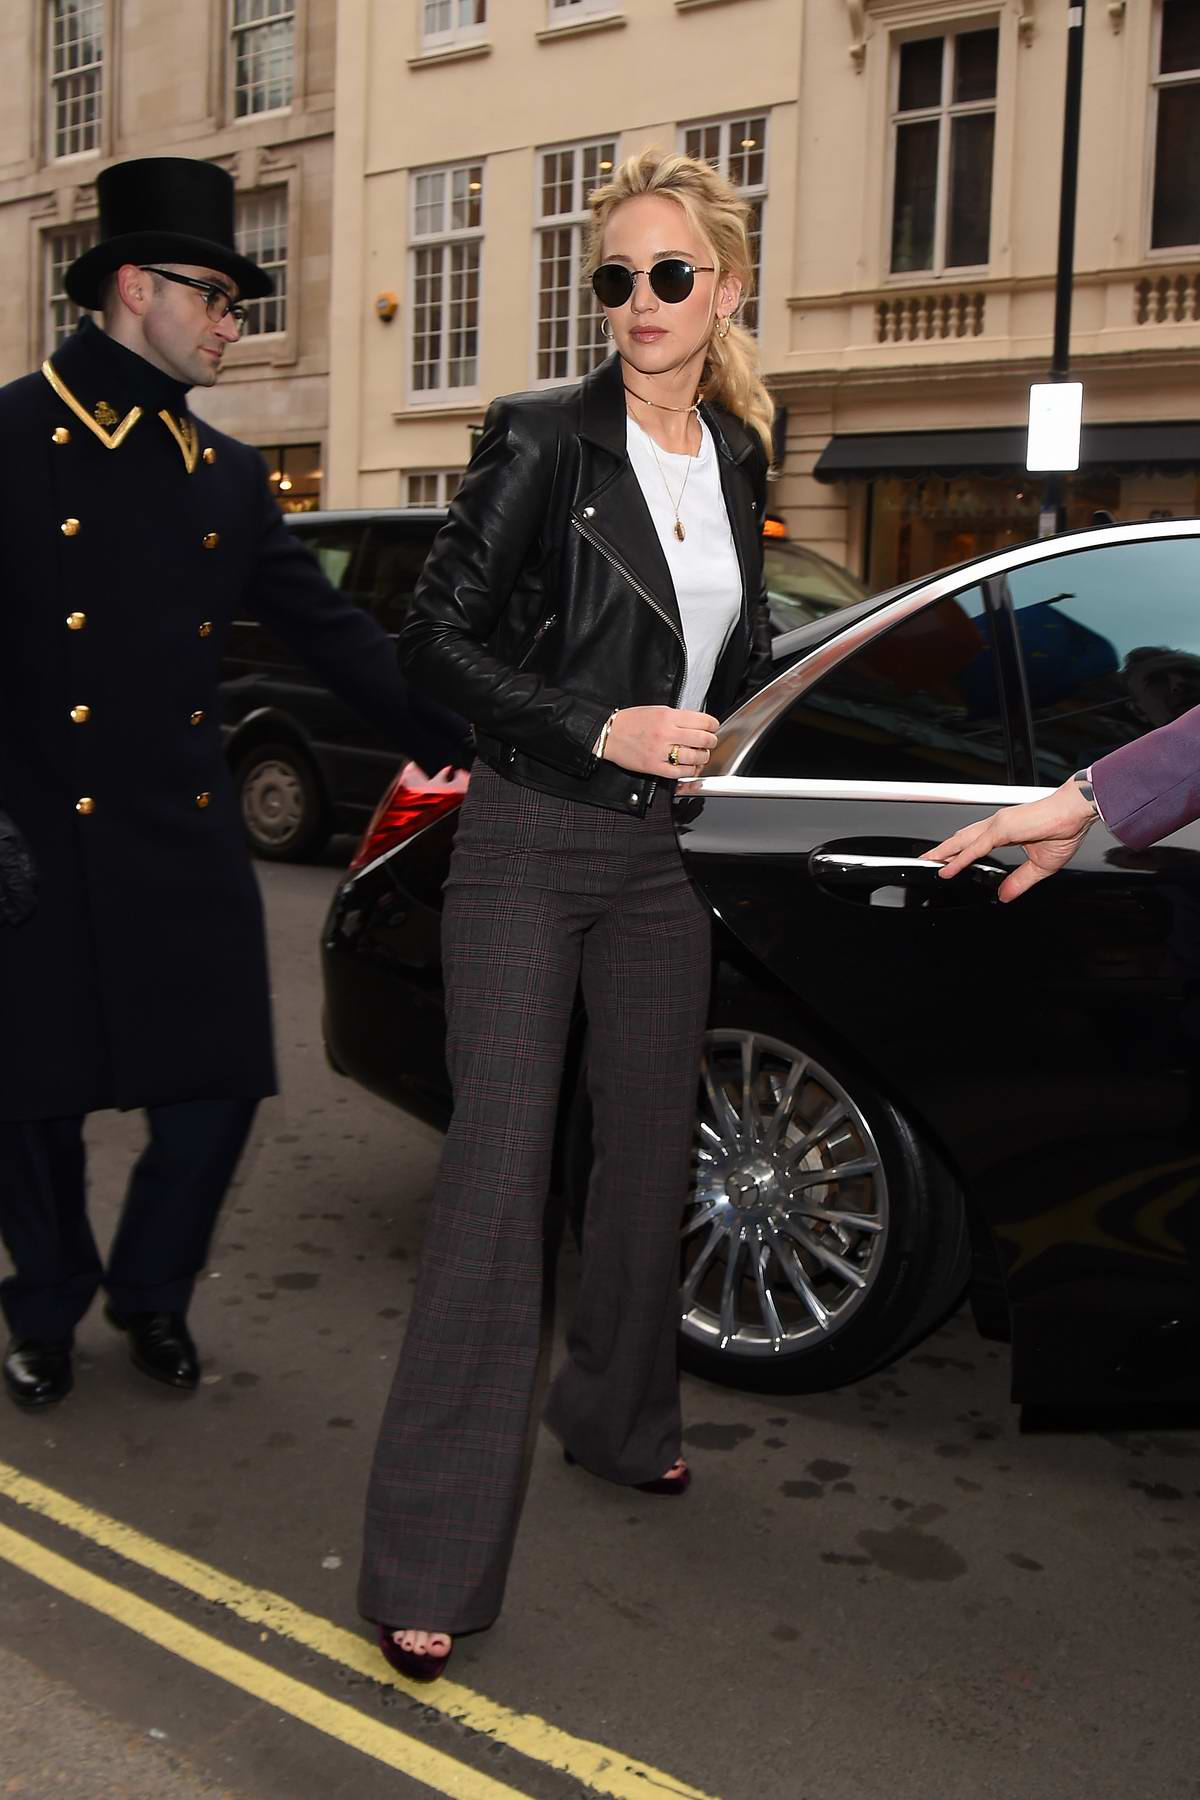 Jennifer Lawrence spotted in a black leather jacket as she arrives back to her hotel in London